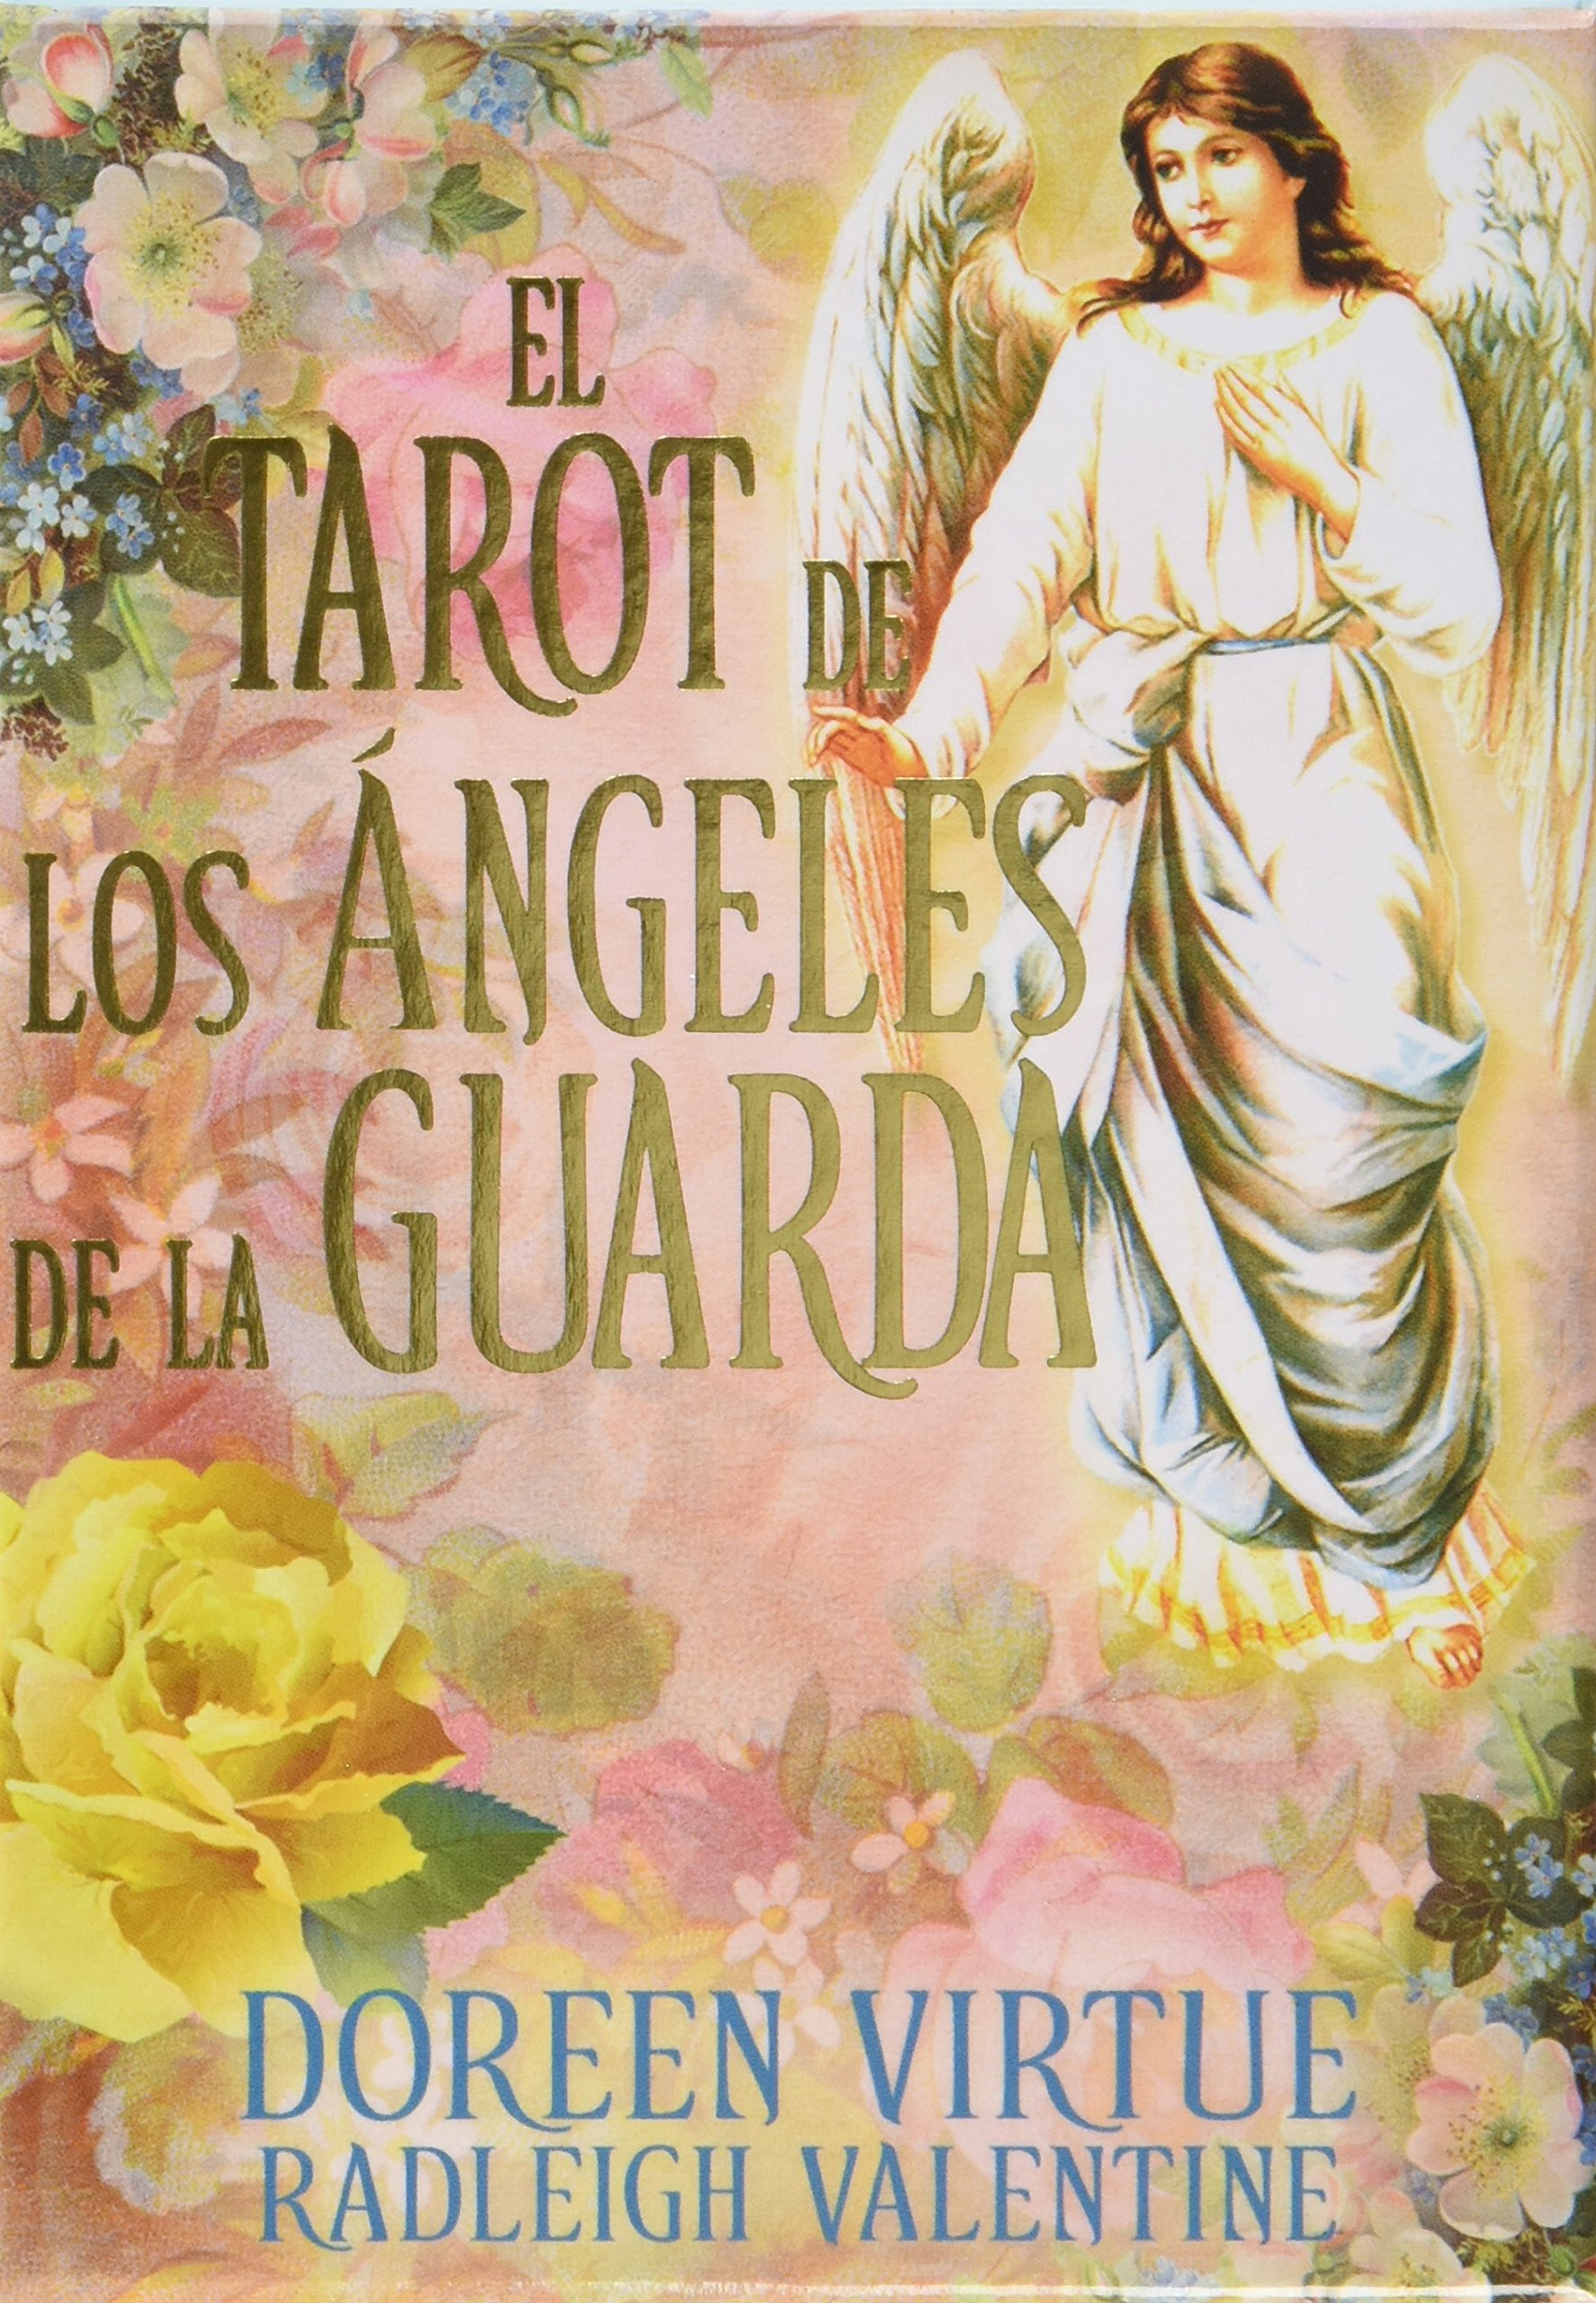 EL TAROT DE LOS ANGELES DE LA GUARDA: 9782813203748: Amazon ...